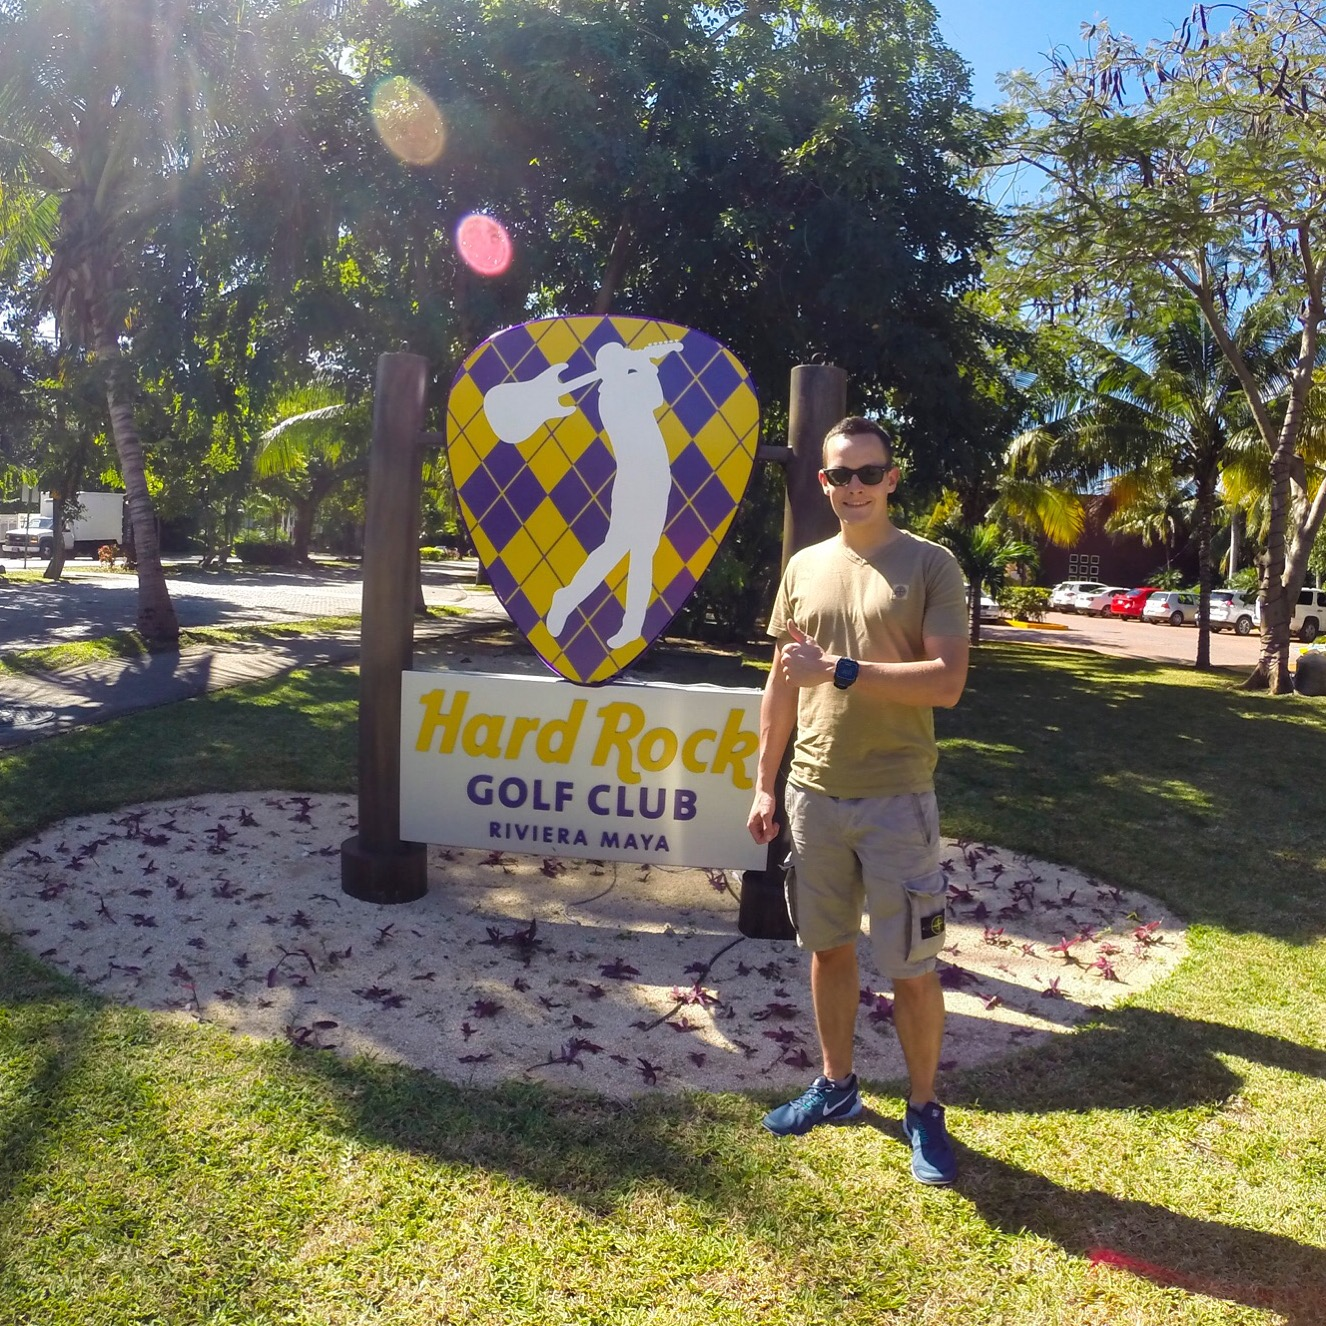 Rock Shop Golf Club Riviera Maya - visited in 2016